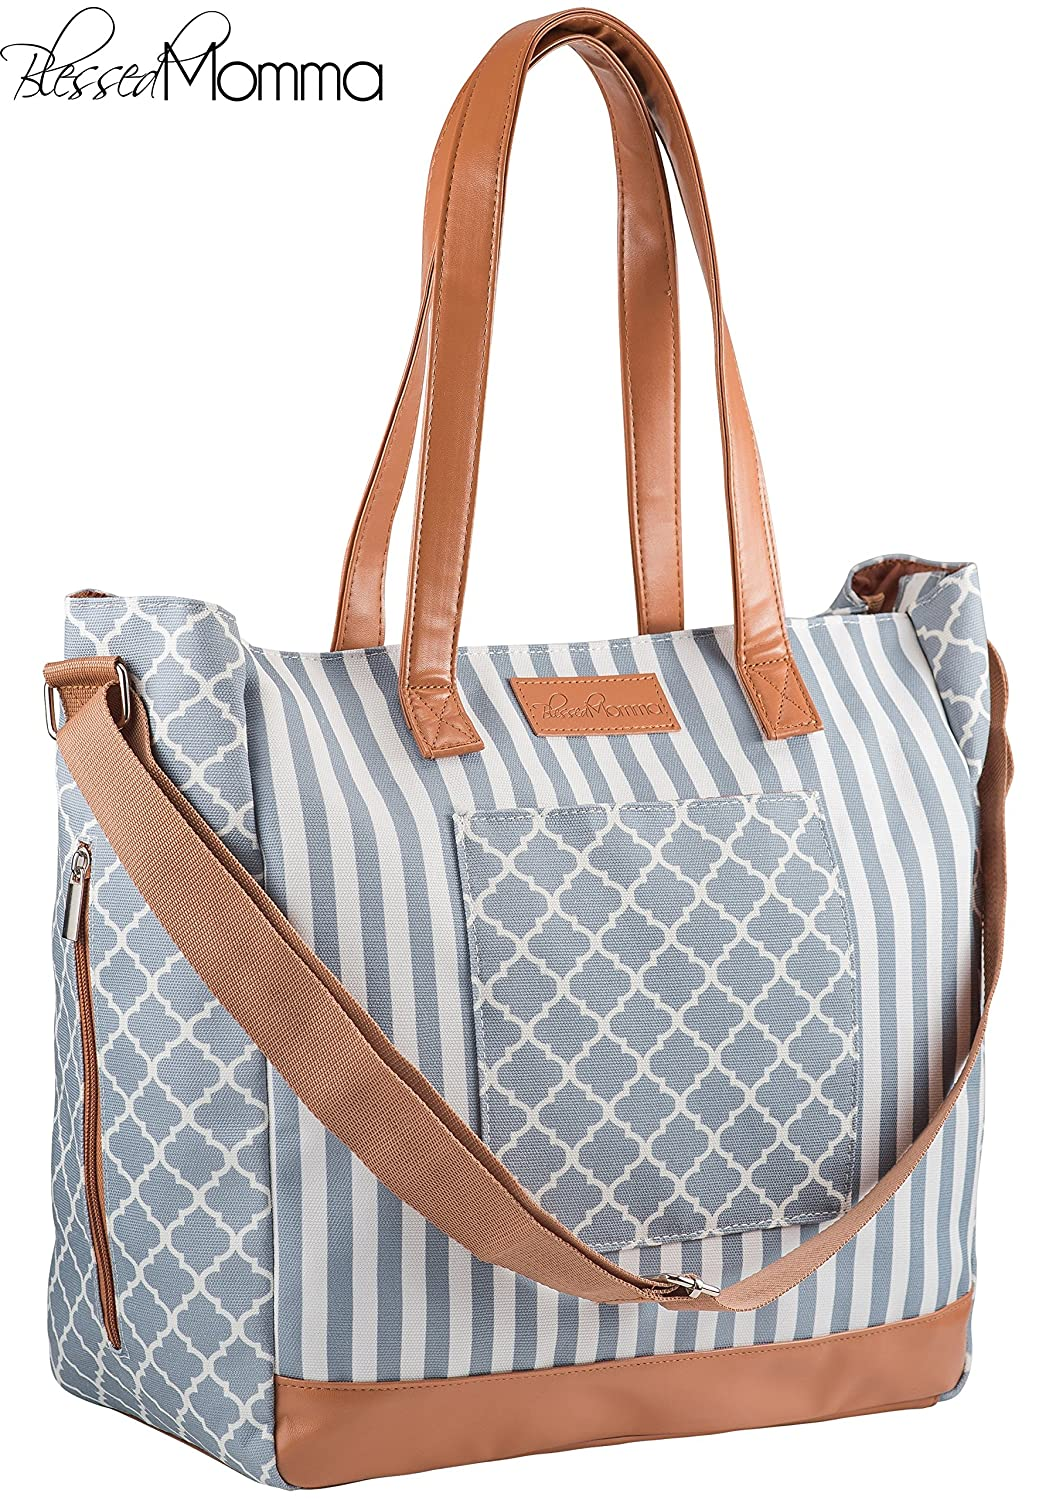 242afe294b64 Sale Stylish Designer Diaper Bag for Women | Elegant & Practical Baby Tote  Bag w/Insulated...